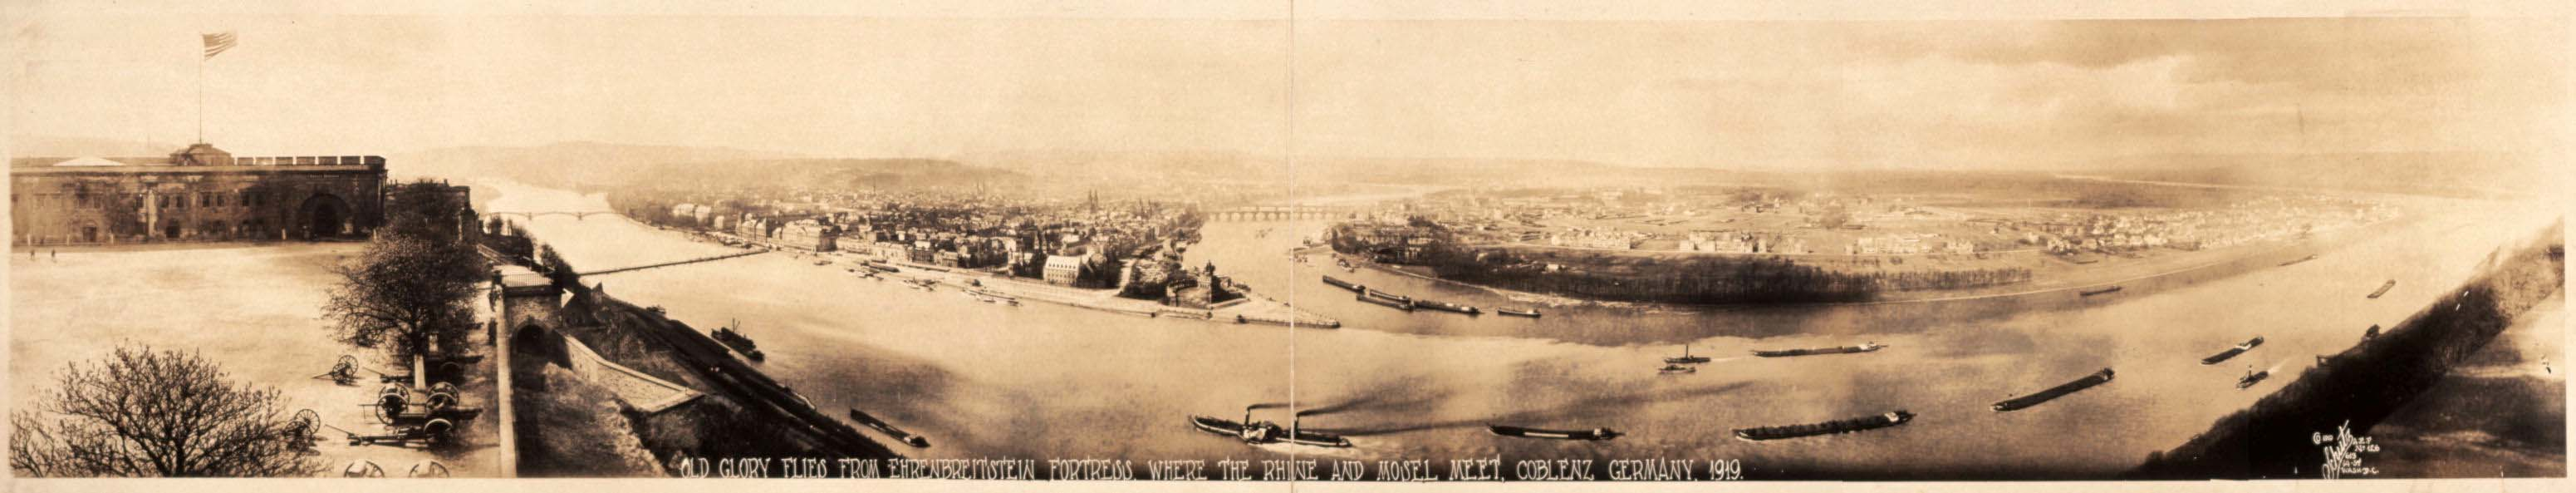 Library of Congress, Old Glory flies from Ehrenbreitstein fortress, where the Rhine and Mosel meet, Coblenz, Germany, 1919, view from Festung Ehrenbreitstein in Koblenz